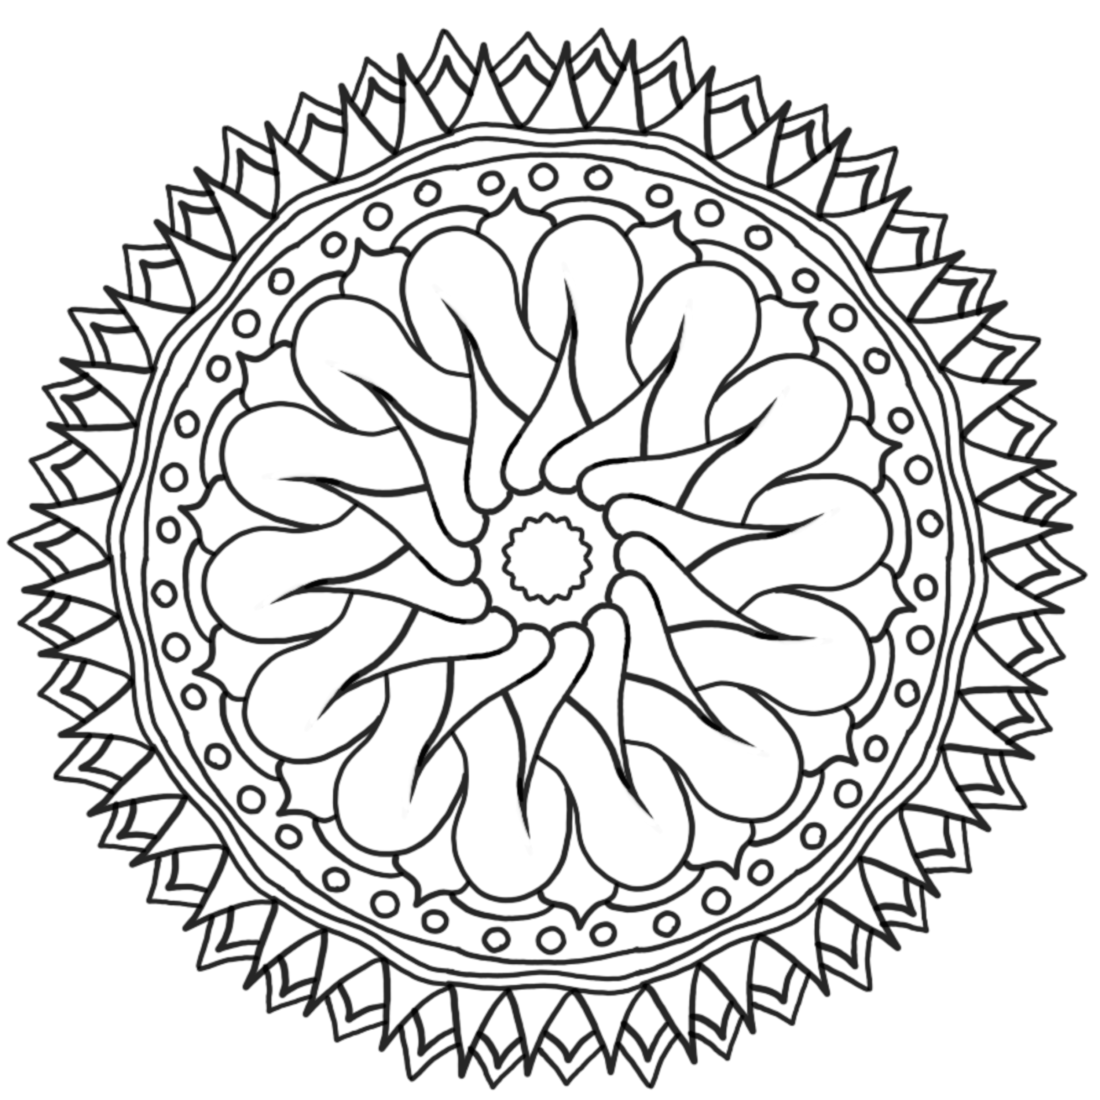 Carried Away A Printable Coloring Page Mandala Coloring Pages Mandala Coloring Free Coloring Pages